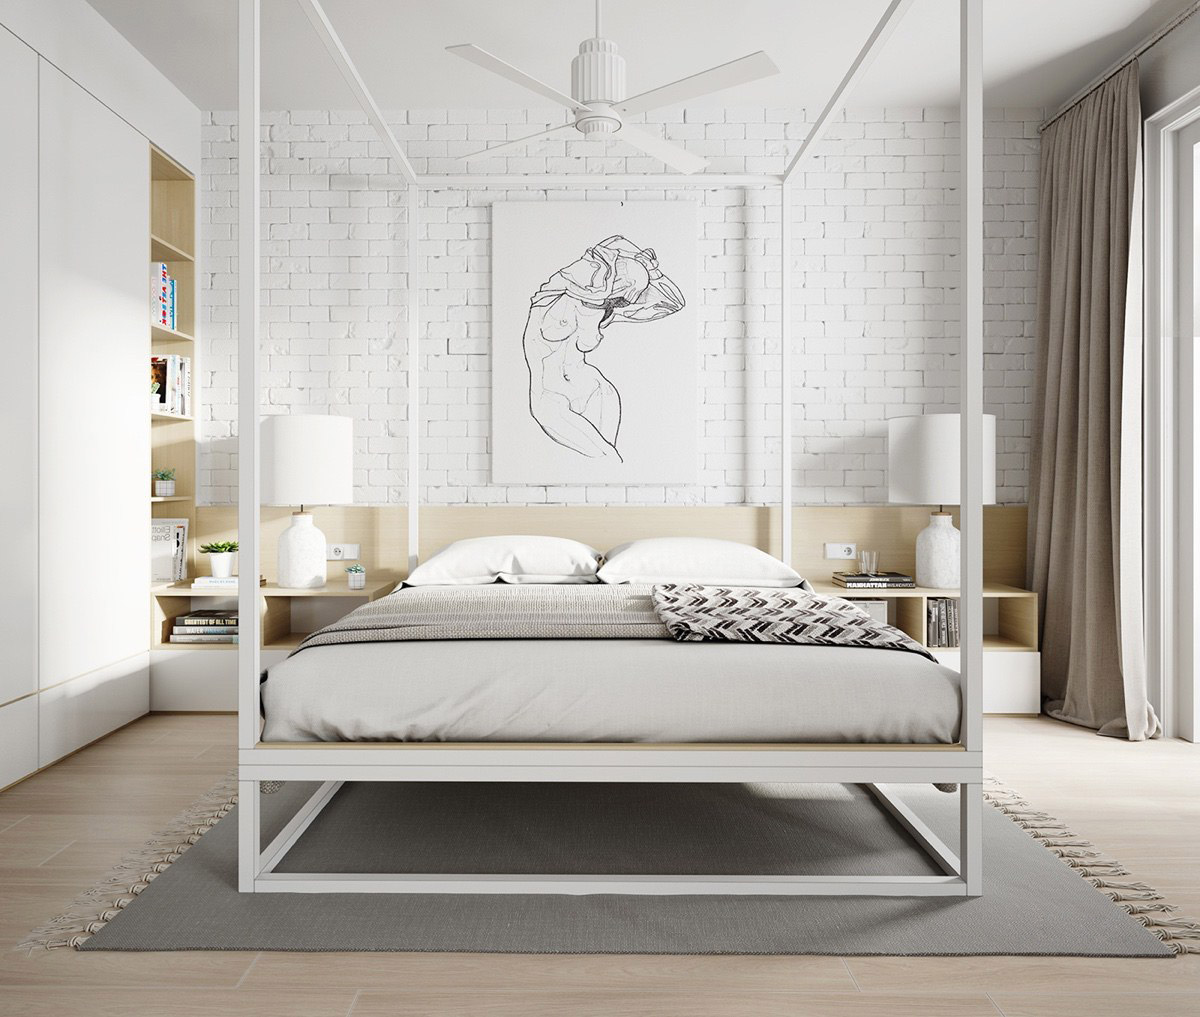 All-White Interior Design: Tips With Example Images To Help You Get It Right images 26